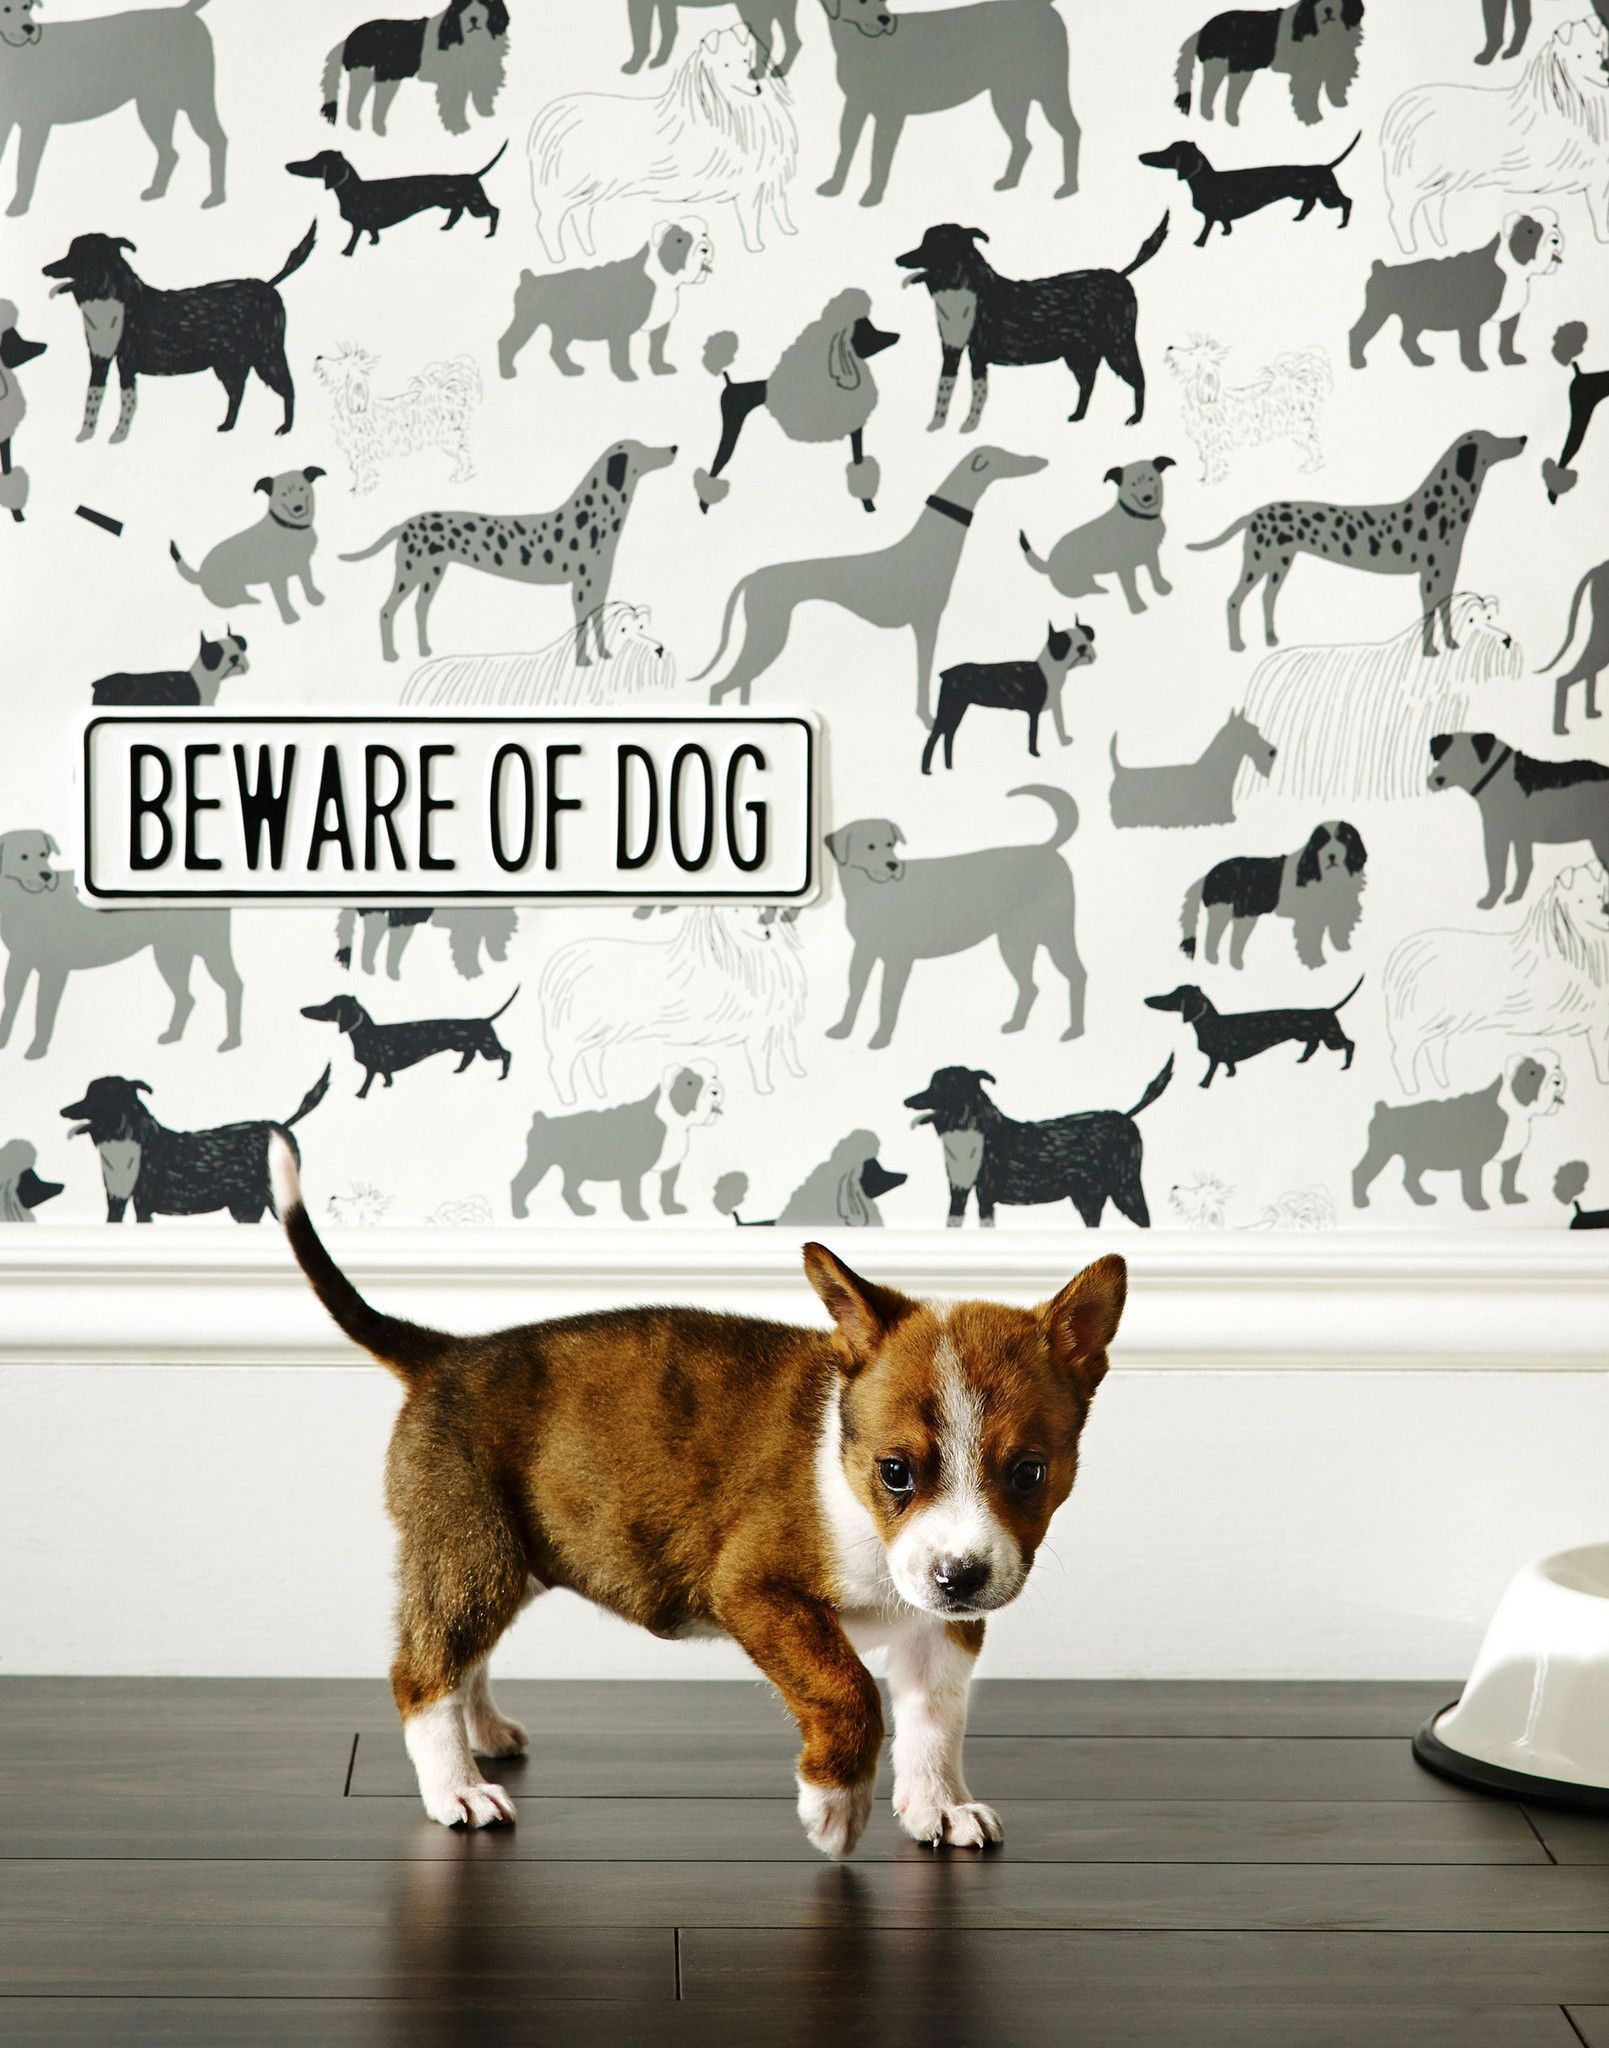 dog park wallpaper by julia rothman ~ clever dog themed wallpaper is